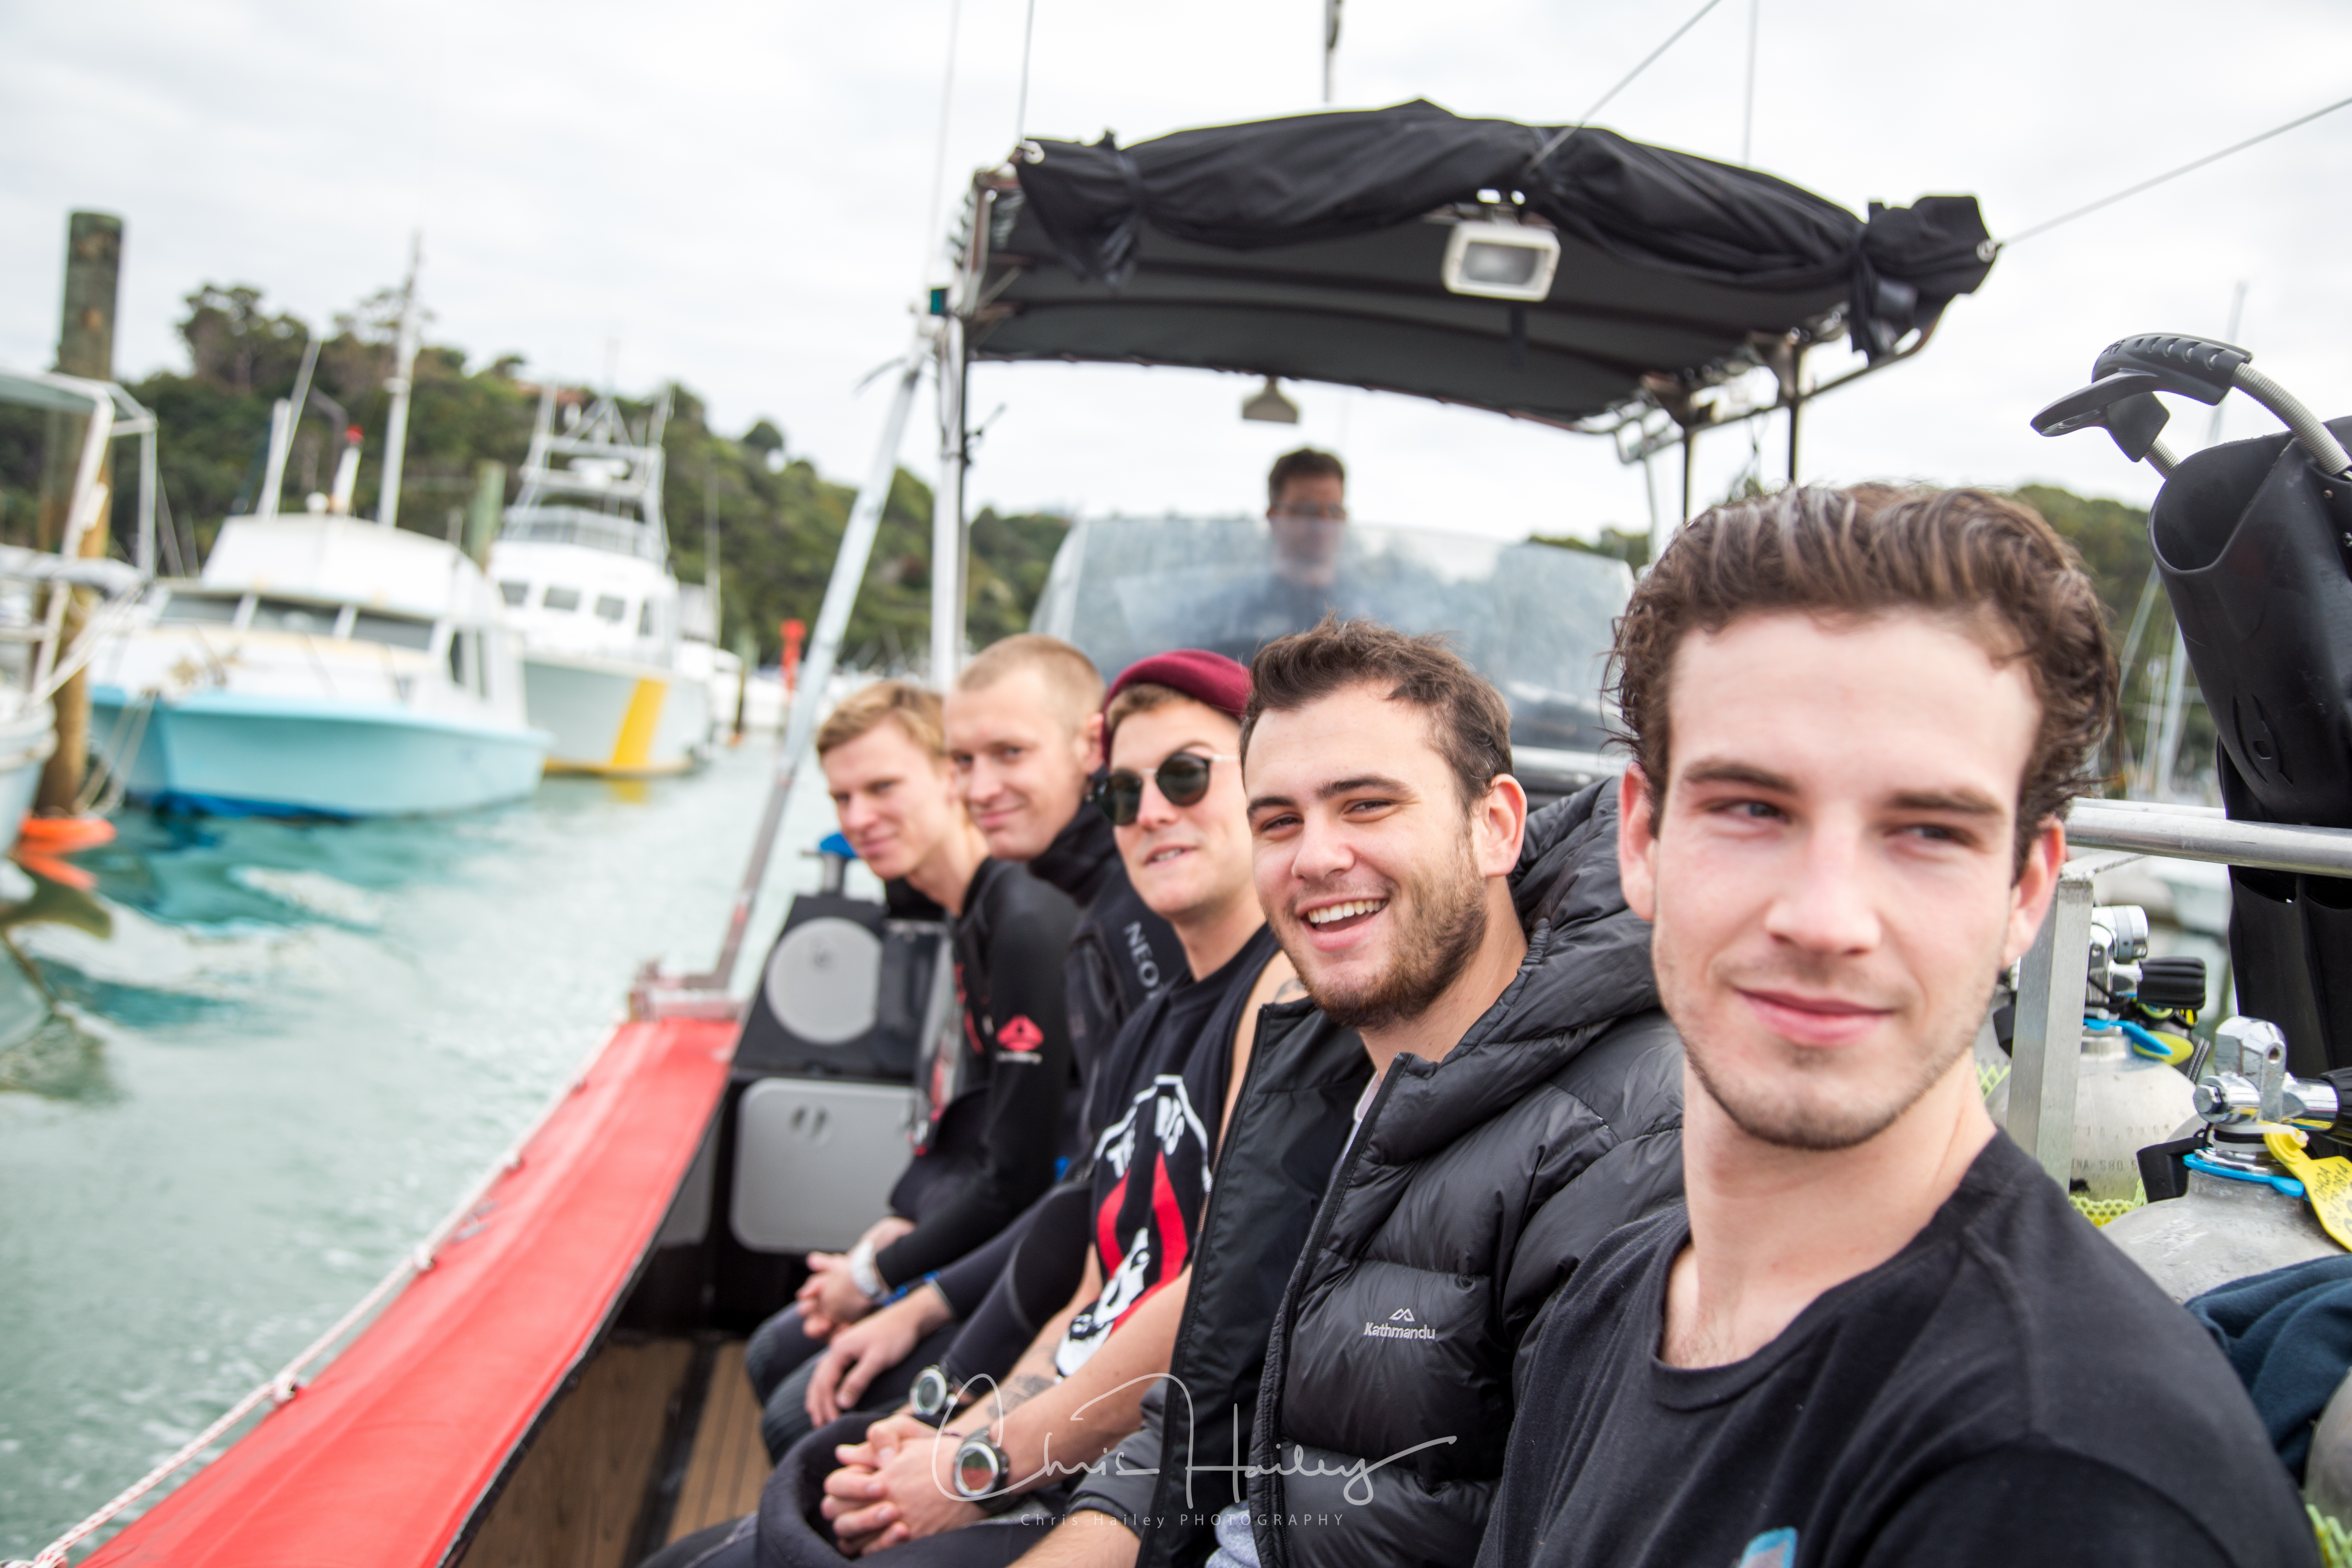 The Diploma group on the Auckland Scuba Boat